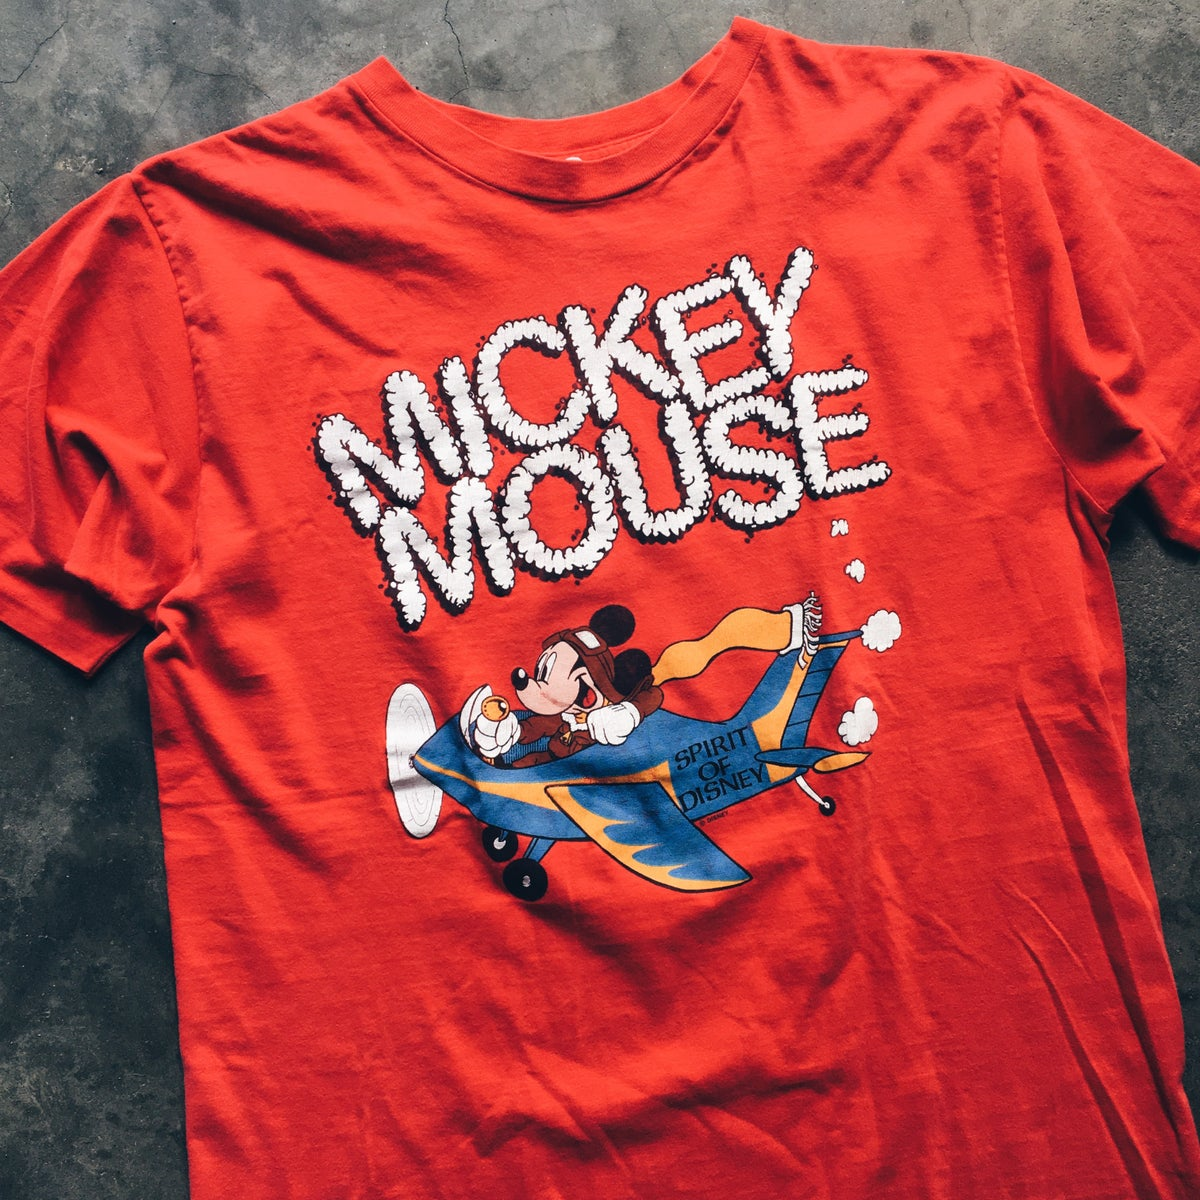 Image of Original Late 80's Disney Mickey Mouse Tee.